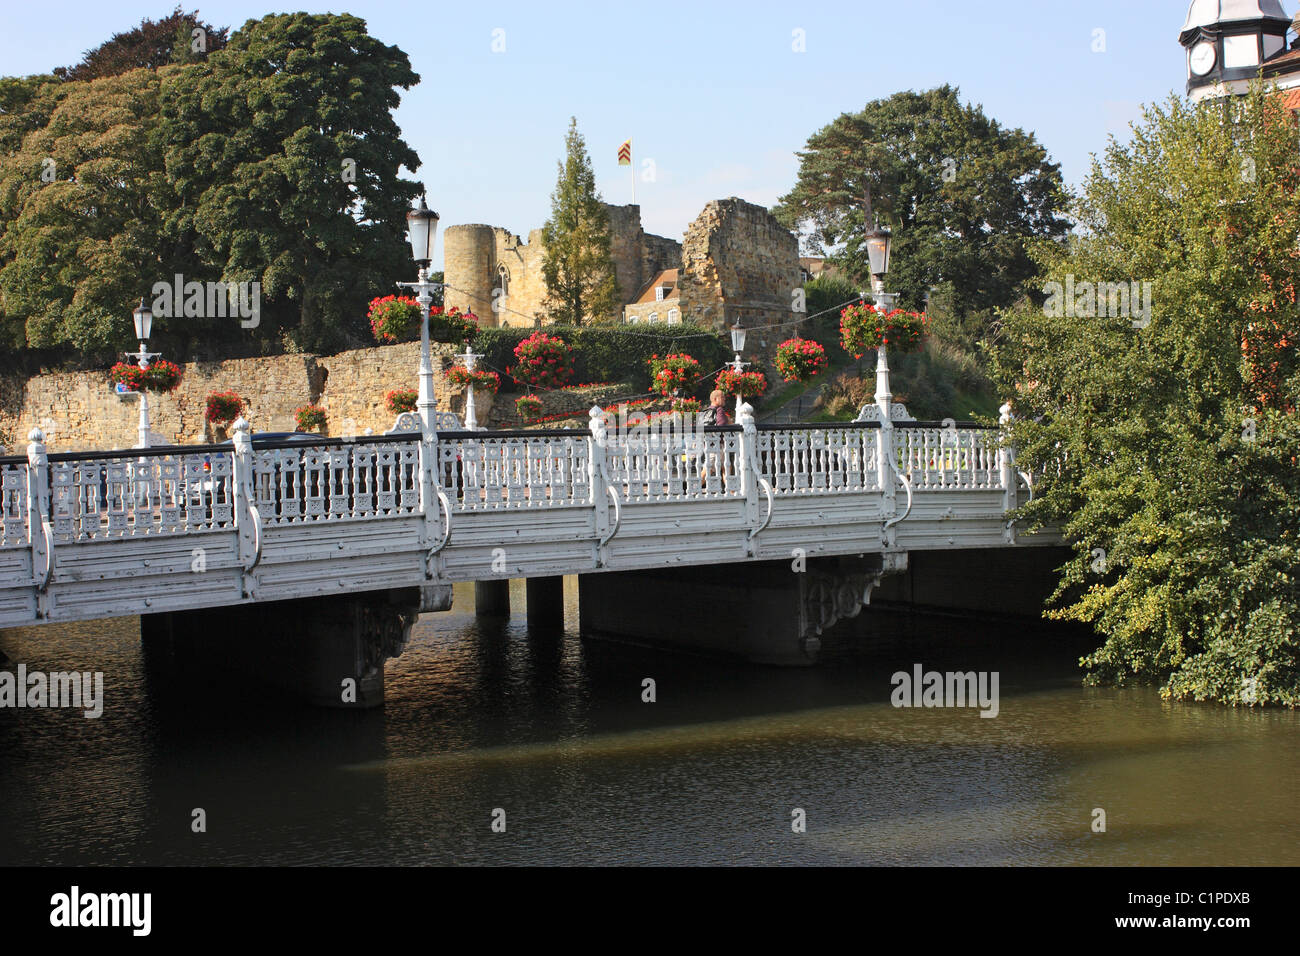 England, Kent, Tonbridge Castle, bridge over River Medway - Stock Image